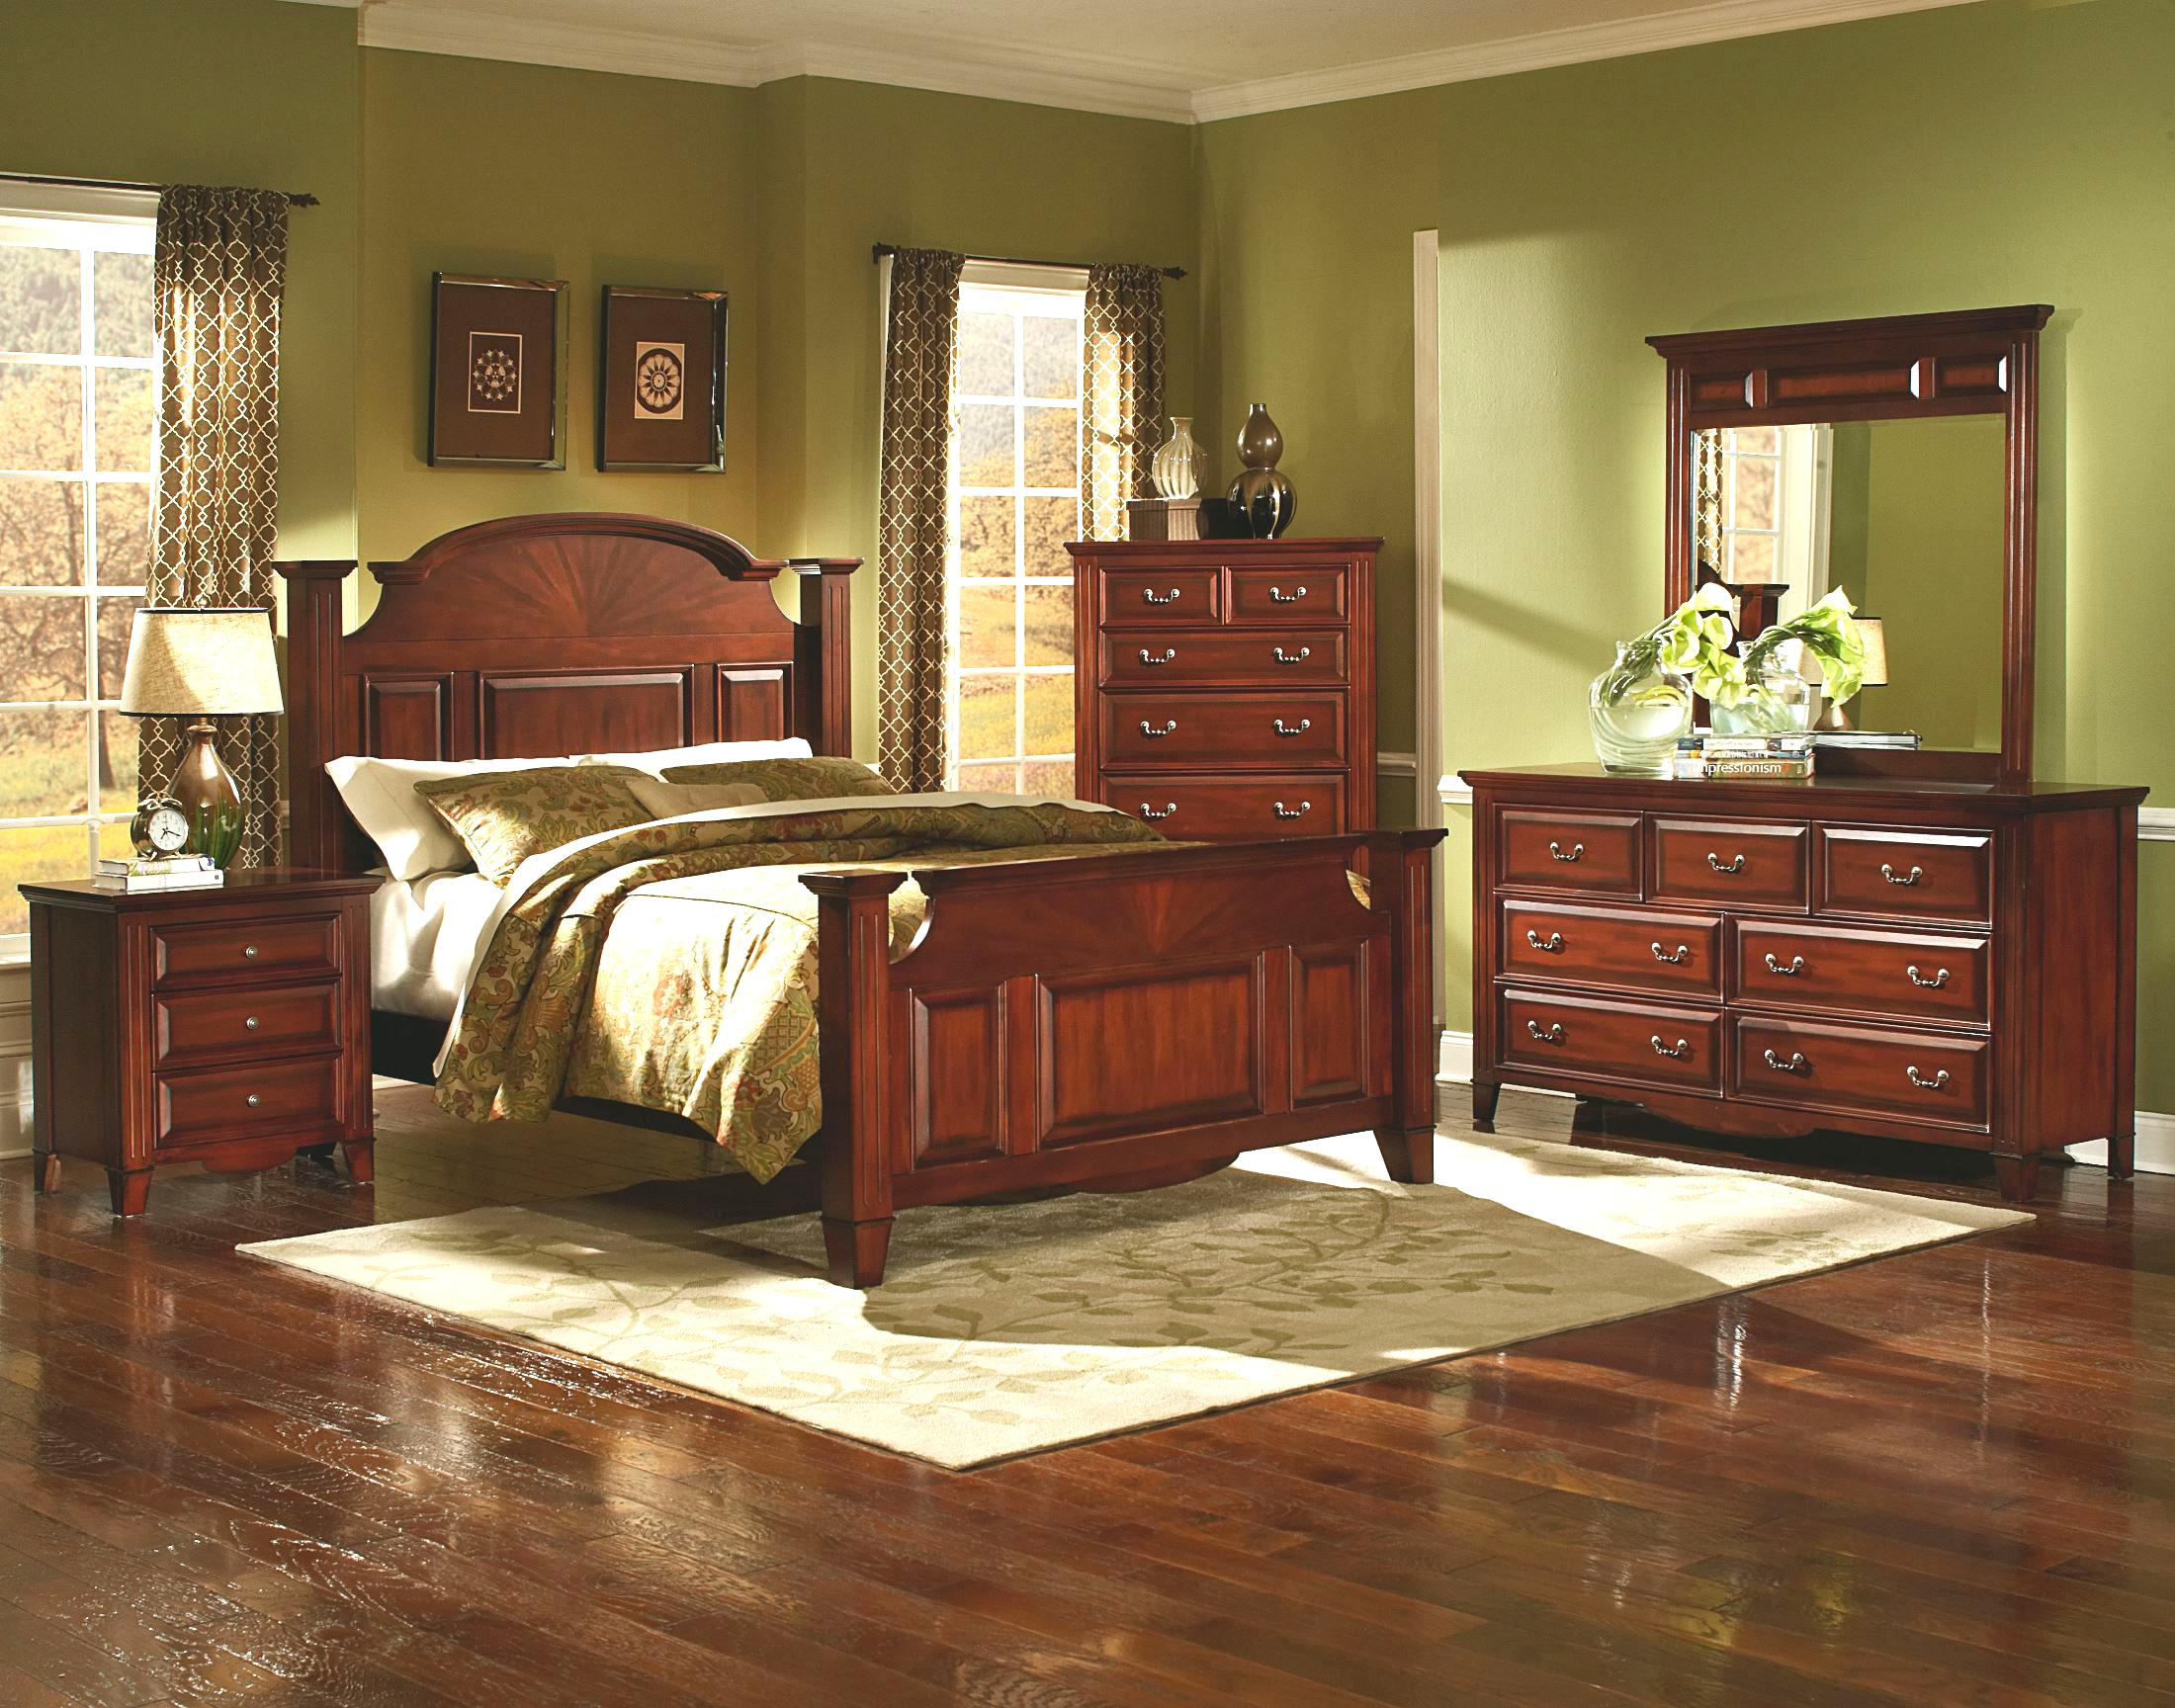 6740 drayton hall bedroom set